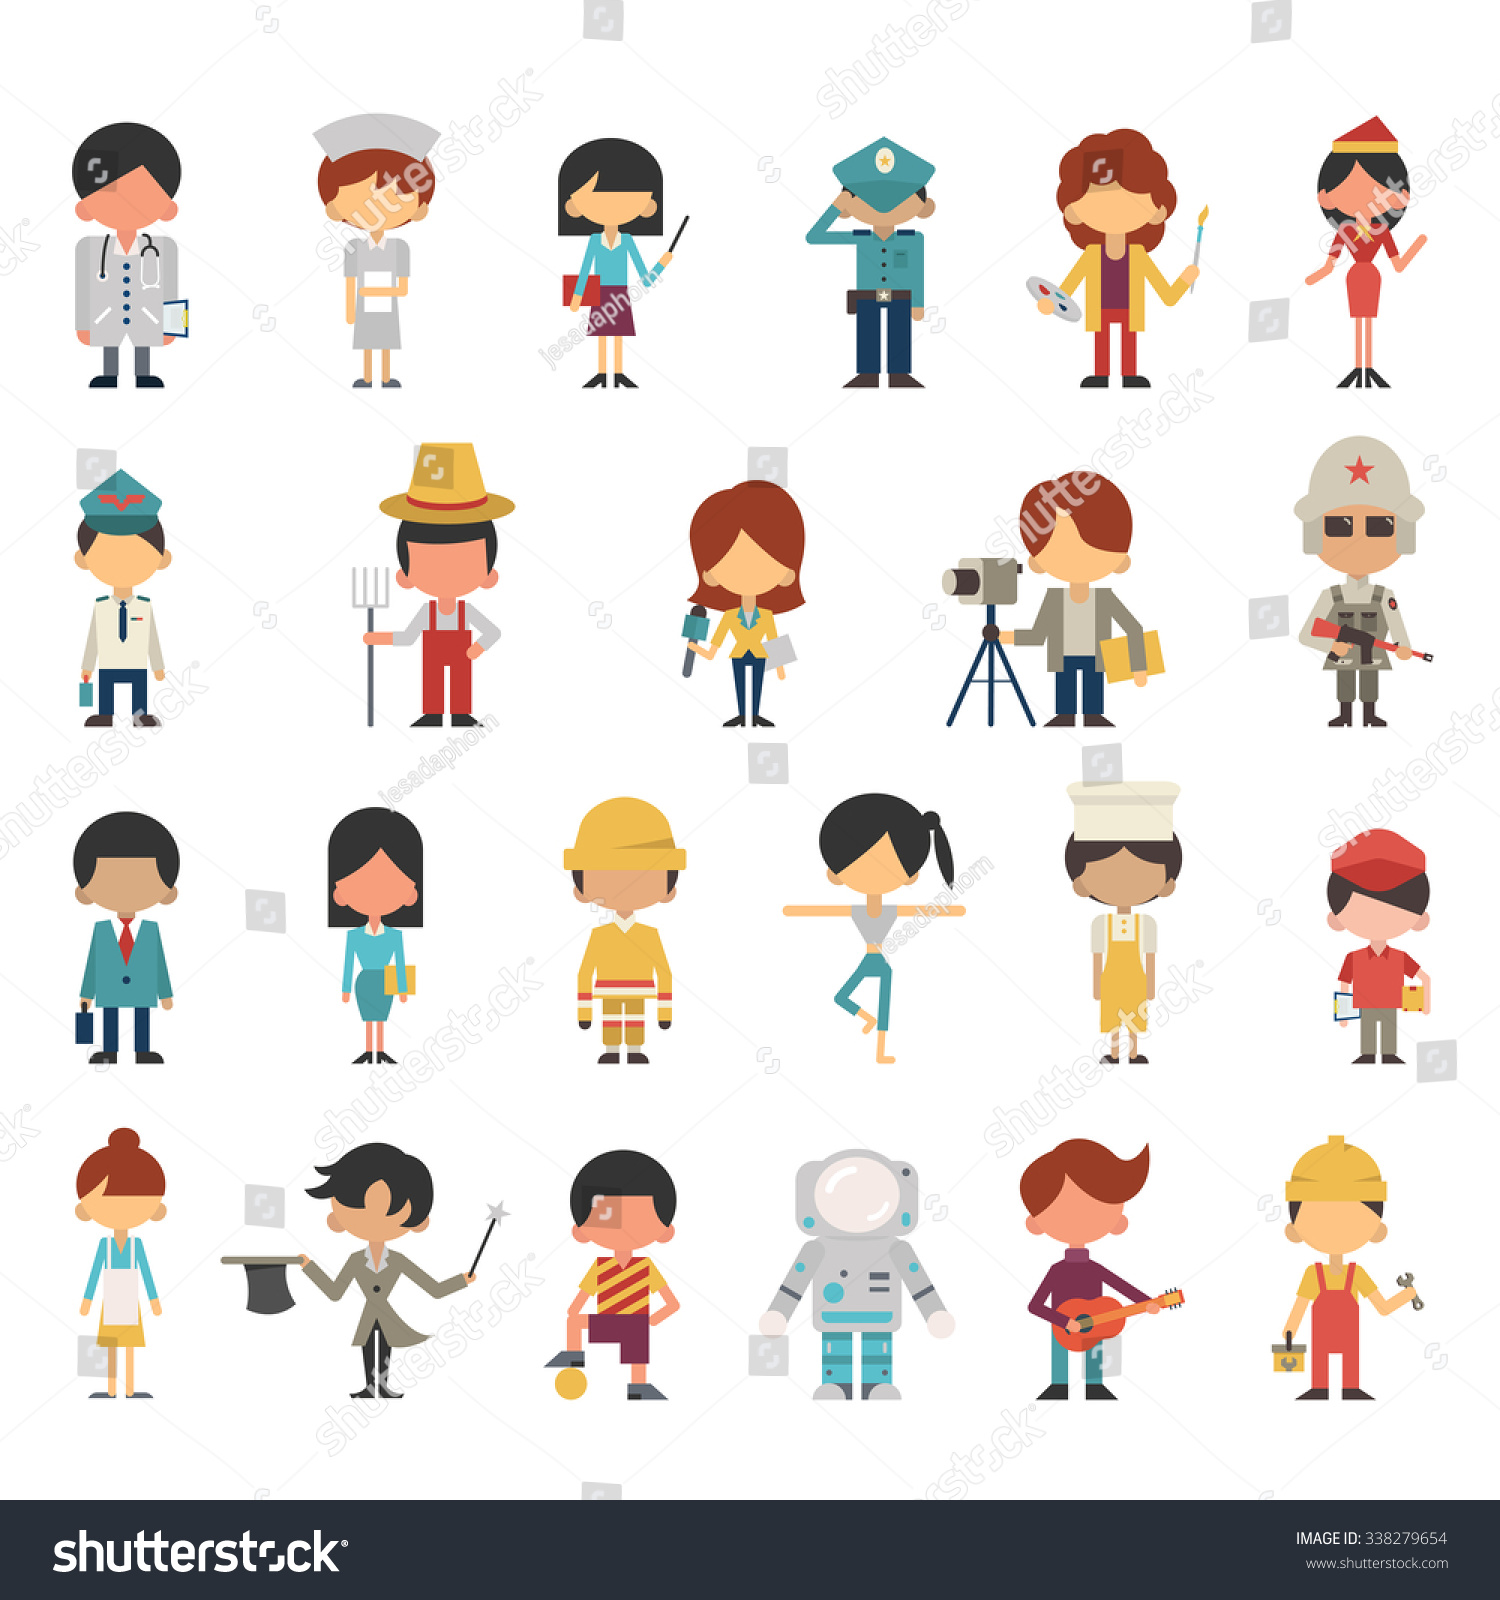 Illustration characters kids children various occupations for Character designer job